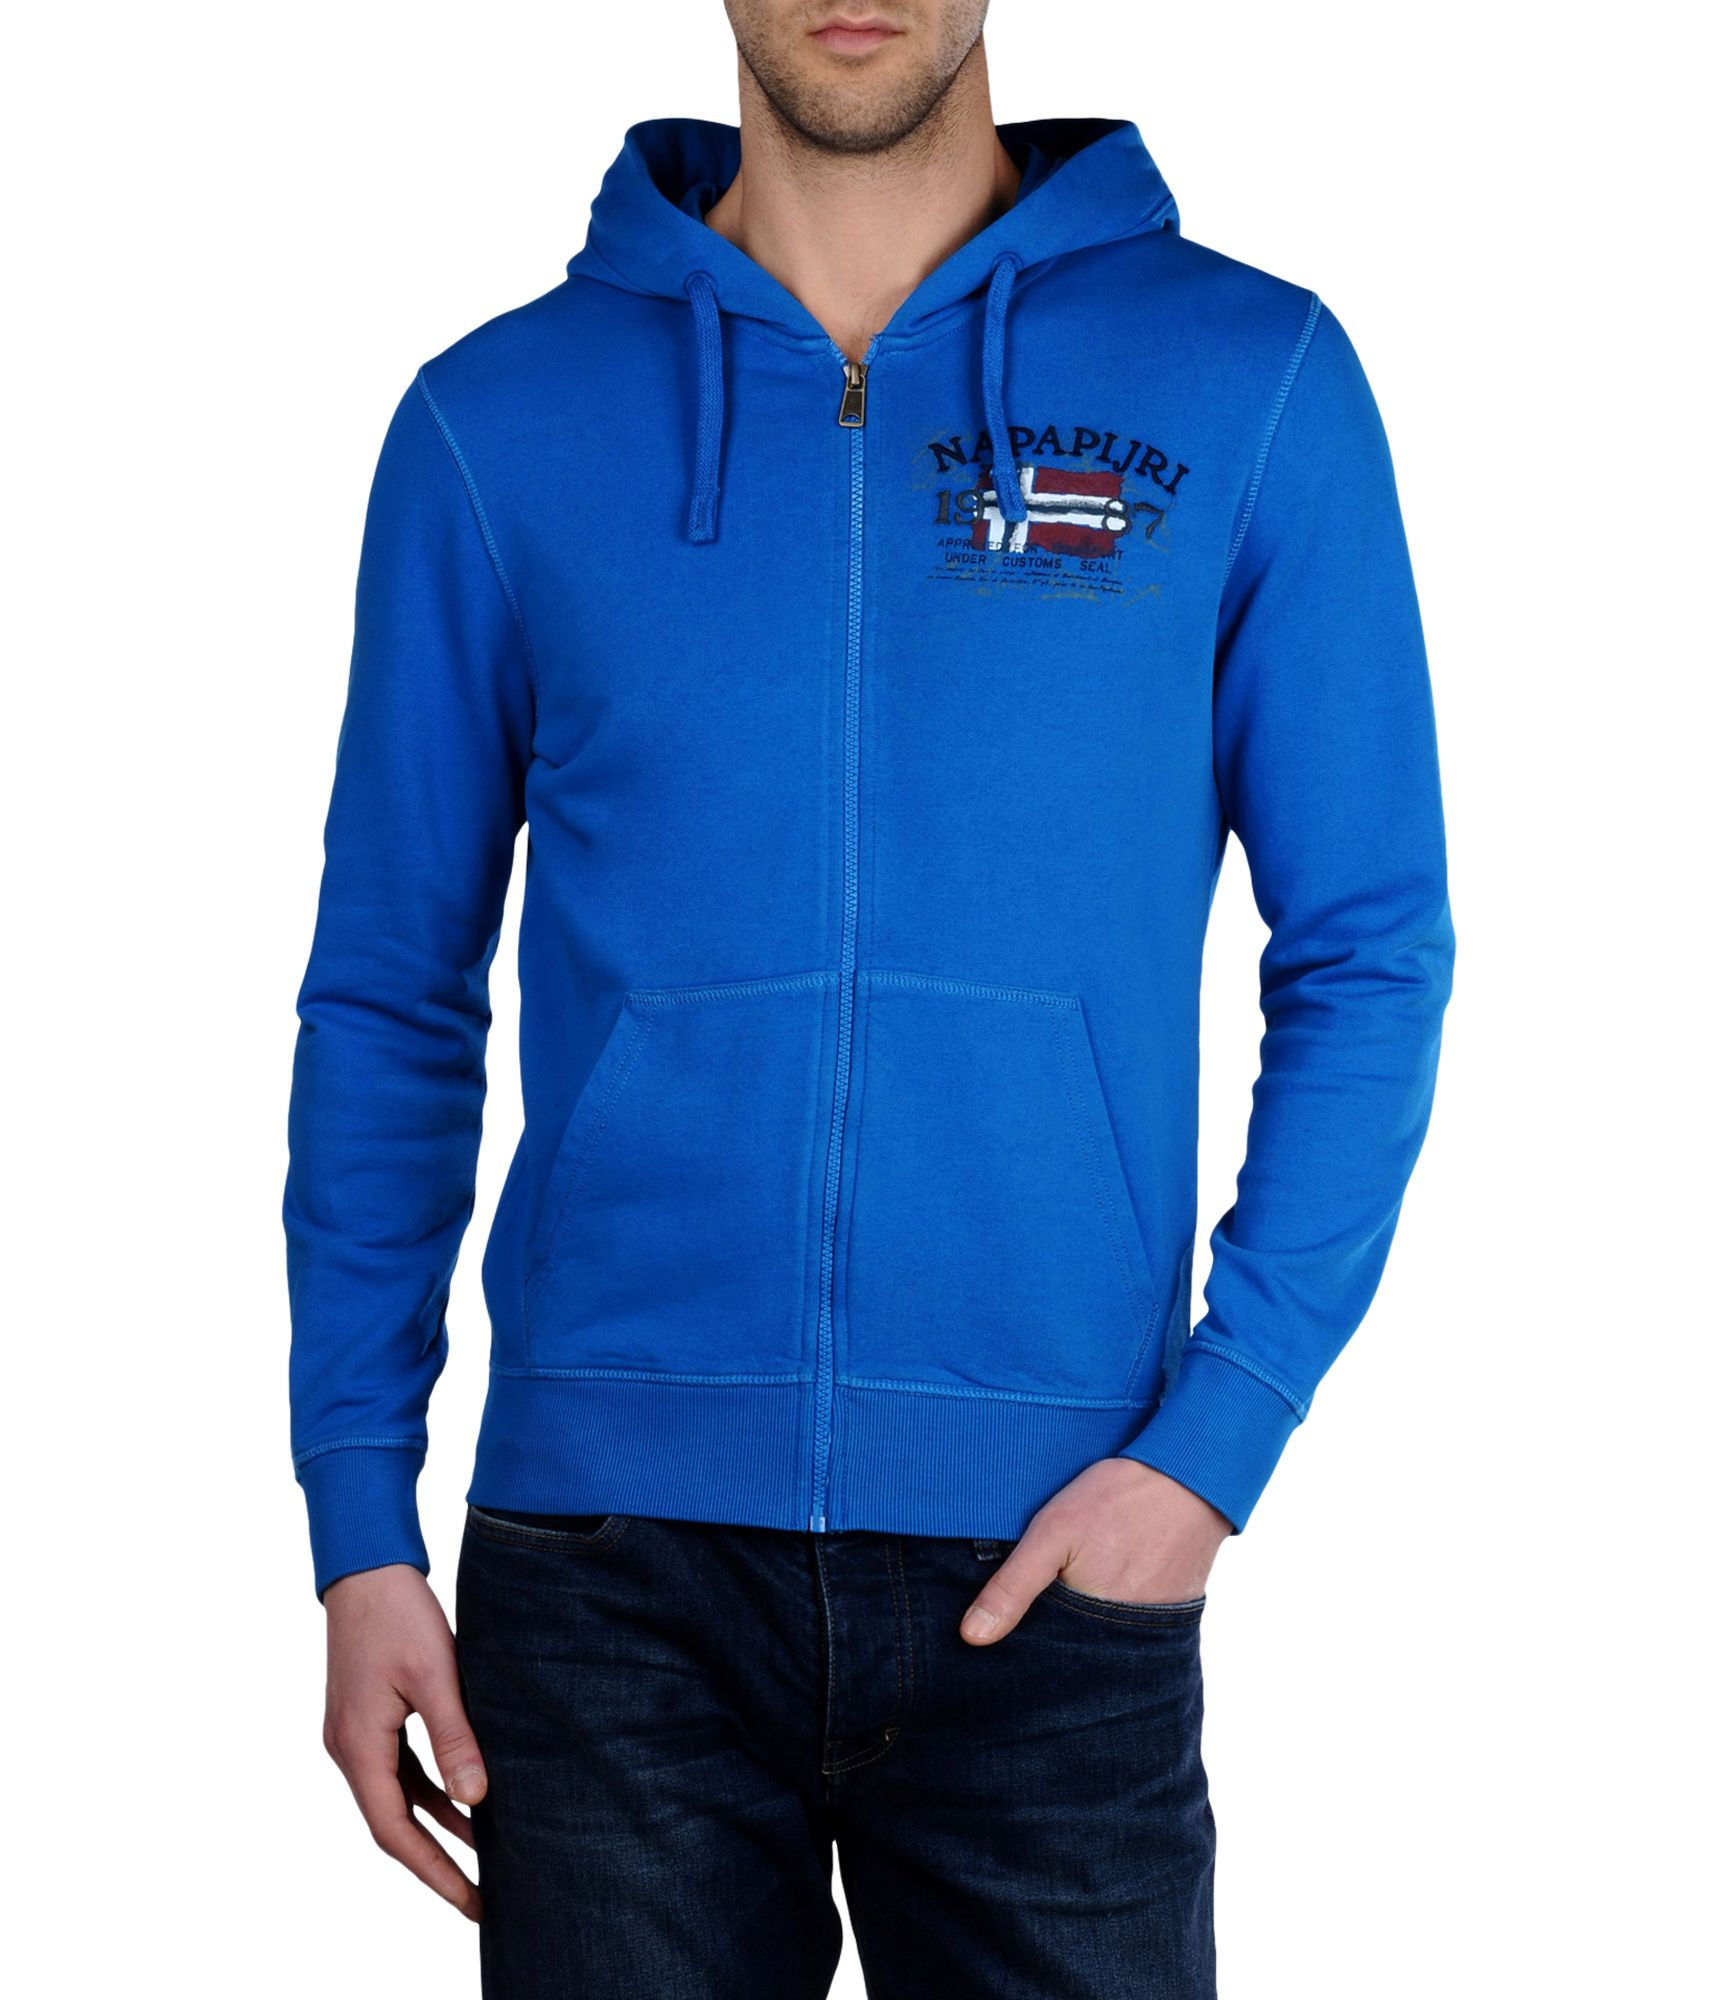 Napapijri Zip Sweatshirt In Blue For Men Lyst